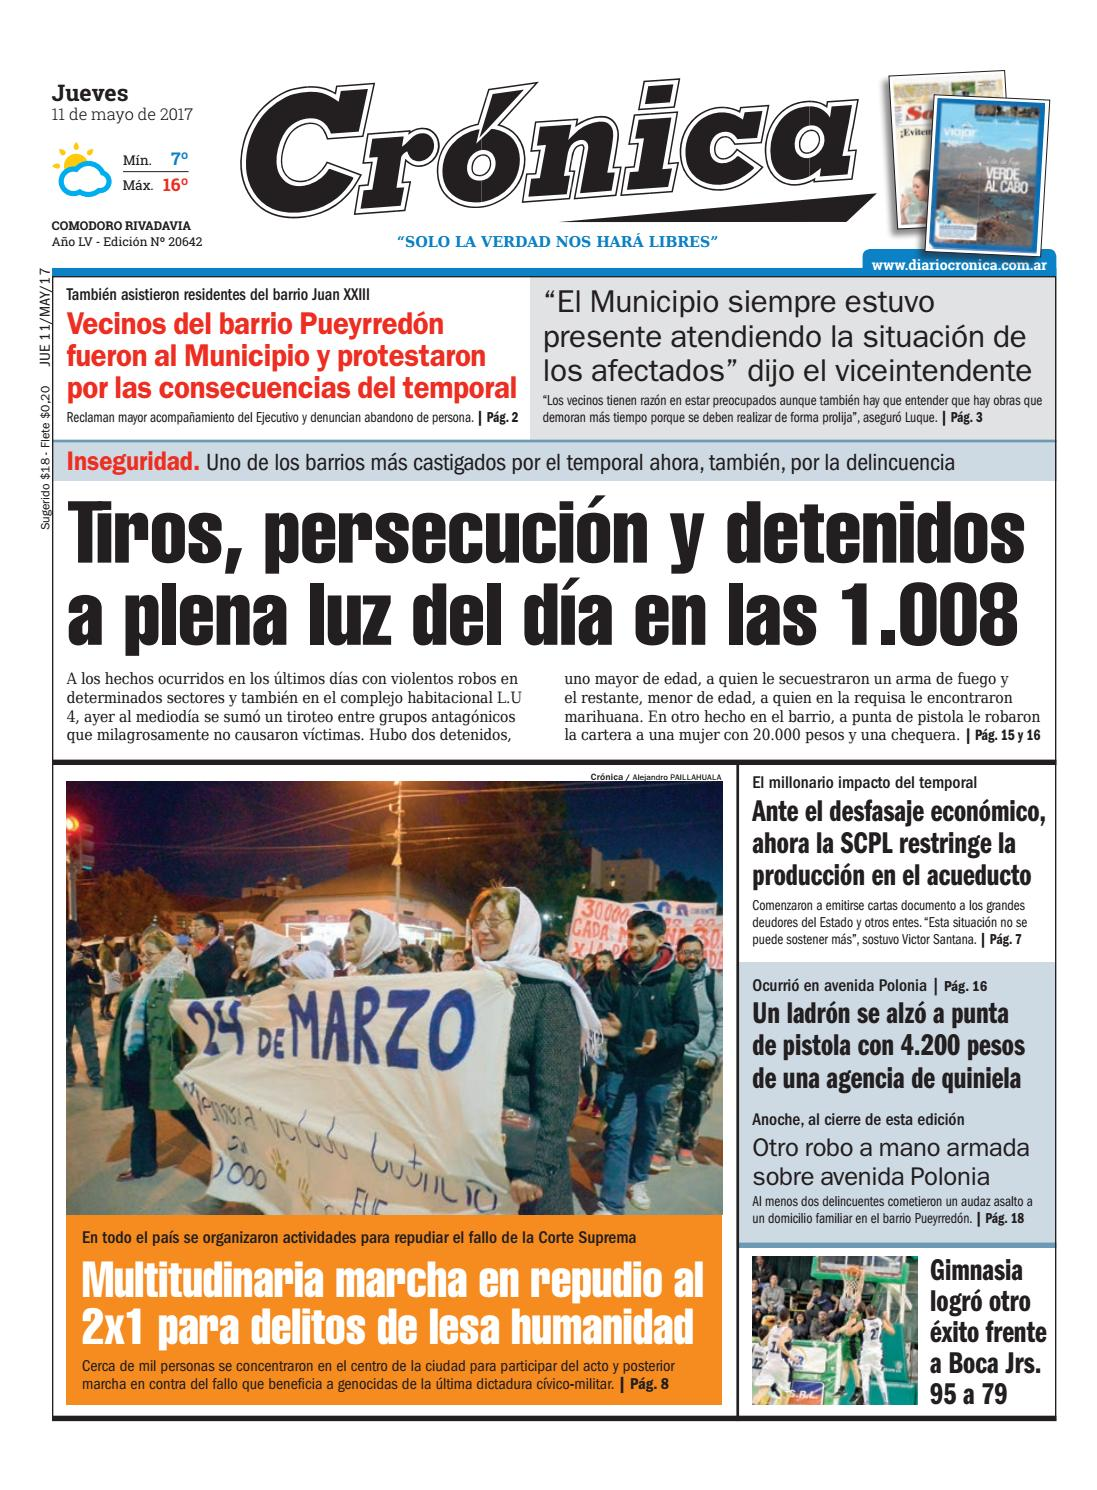 055872aaced7ed2becdaacf870751906 by Diario Crónica - issuu